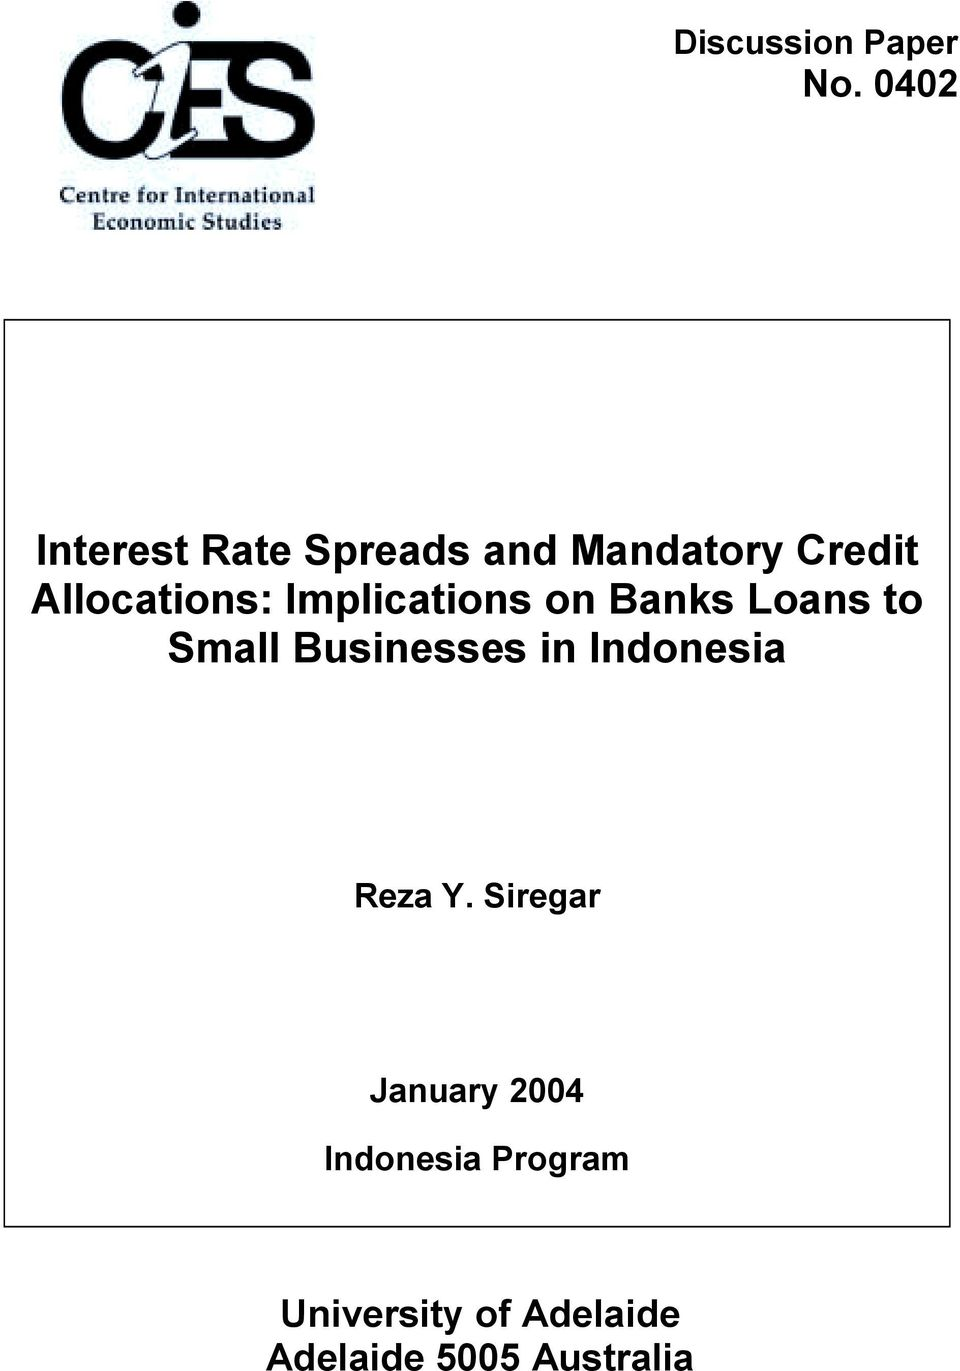 Implicaion on Bank oan o Small Buinee in Indoneia